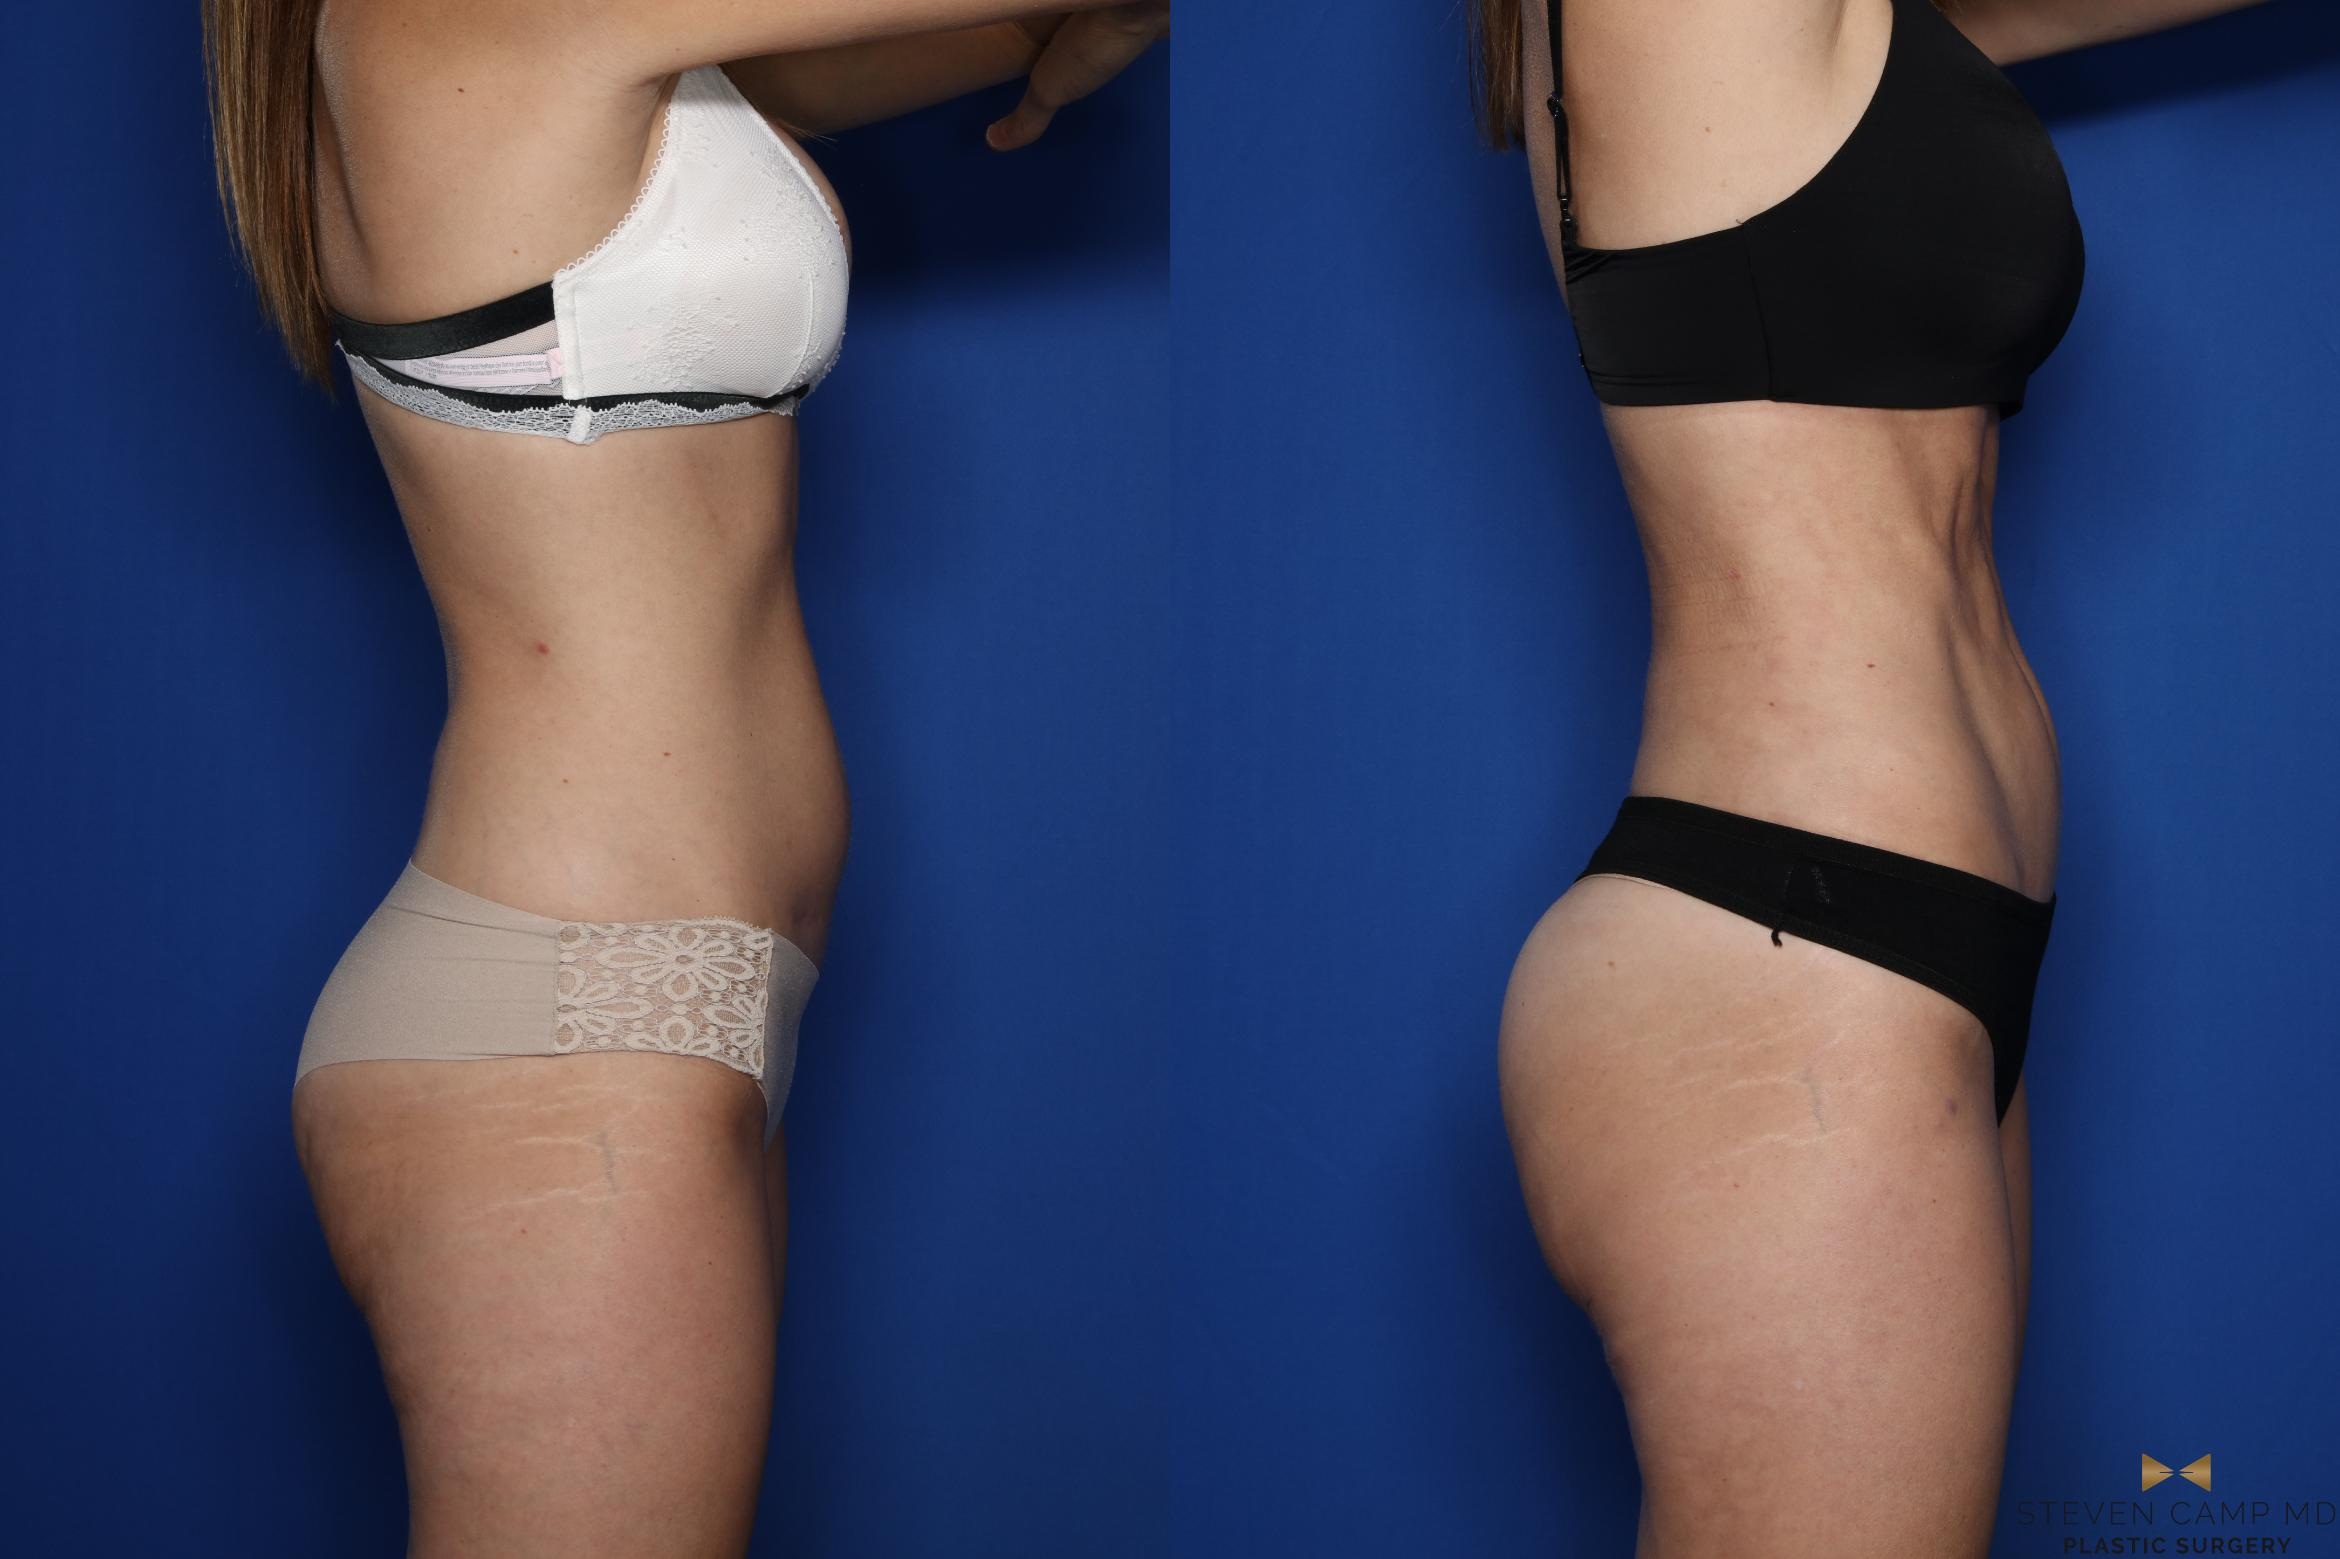 Liposuction Before & After Photo | Fort Worth, Texas | Steven Camp MD Plastic Surgery